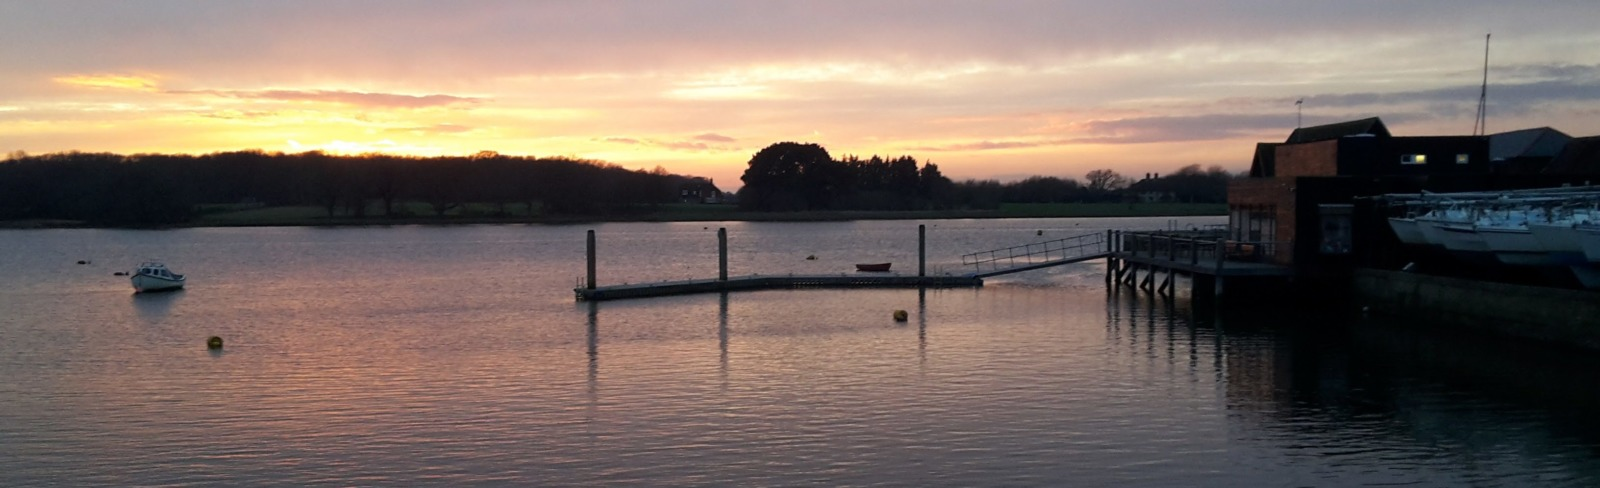 Sunset at Dell Quay